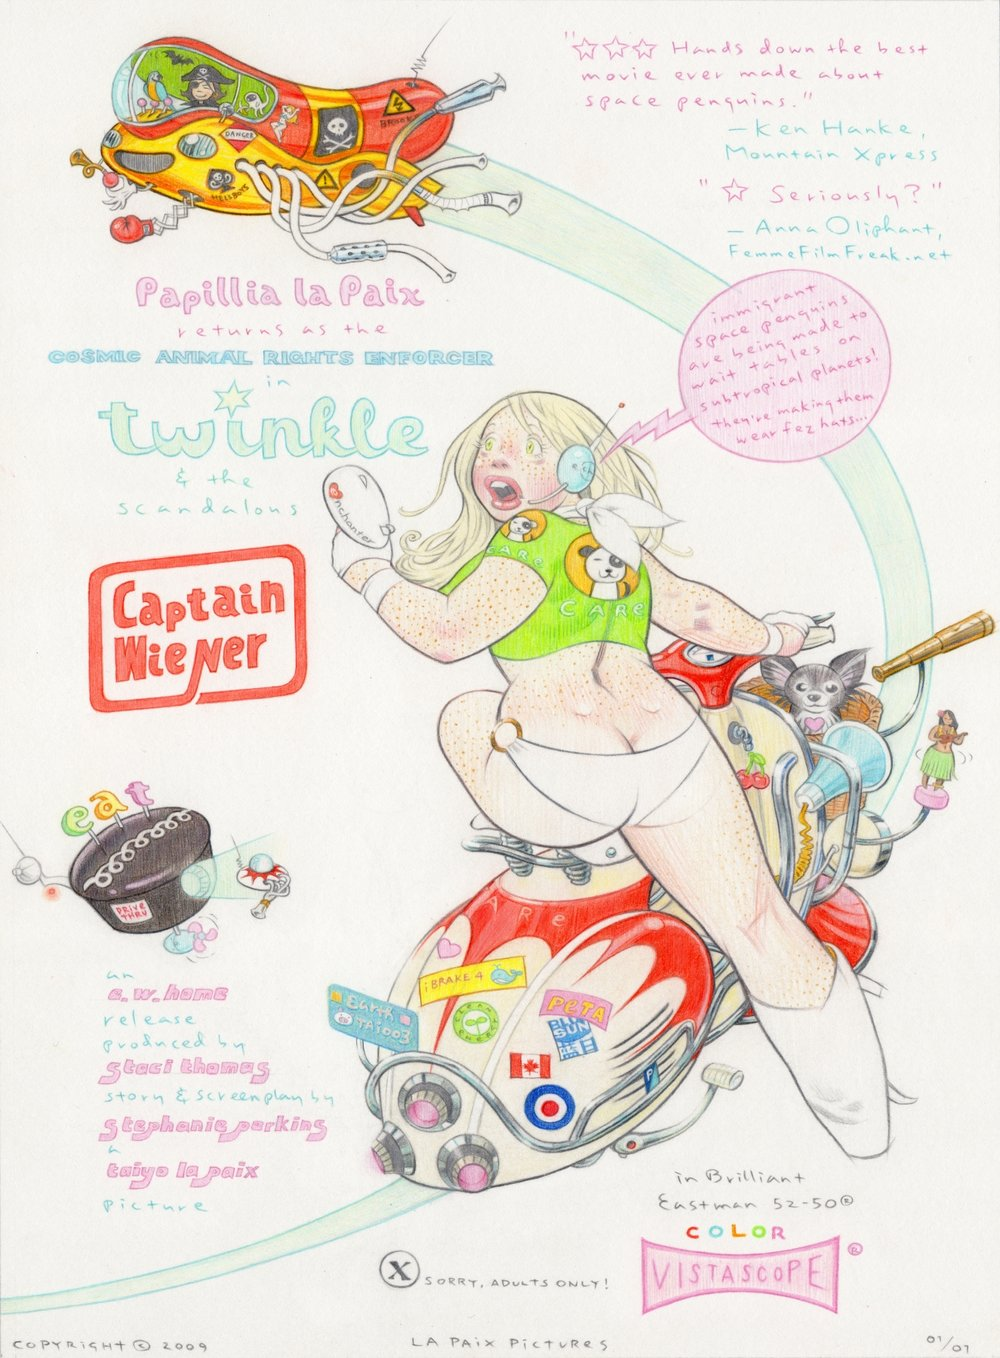 Twinkle and the Scandalous Captain Wiener, 2009, pencil on paper, 12.5 x 9.25 inches, courtesy of Stephanie Perkins